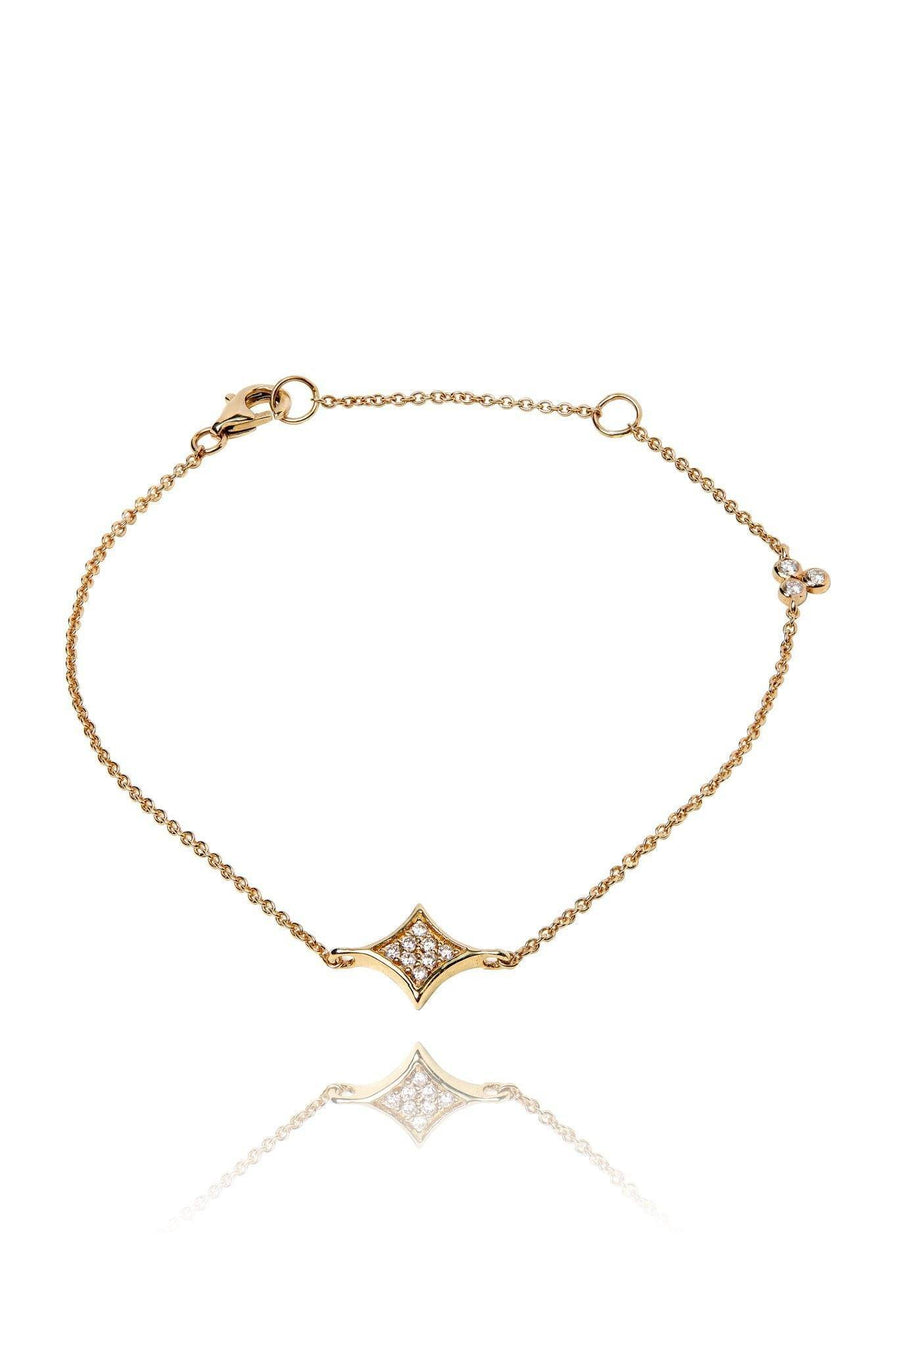 Rhombus Diamond Pavé Bracelet Bracelets Lark and Berry Yellow Gold